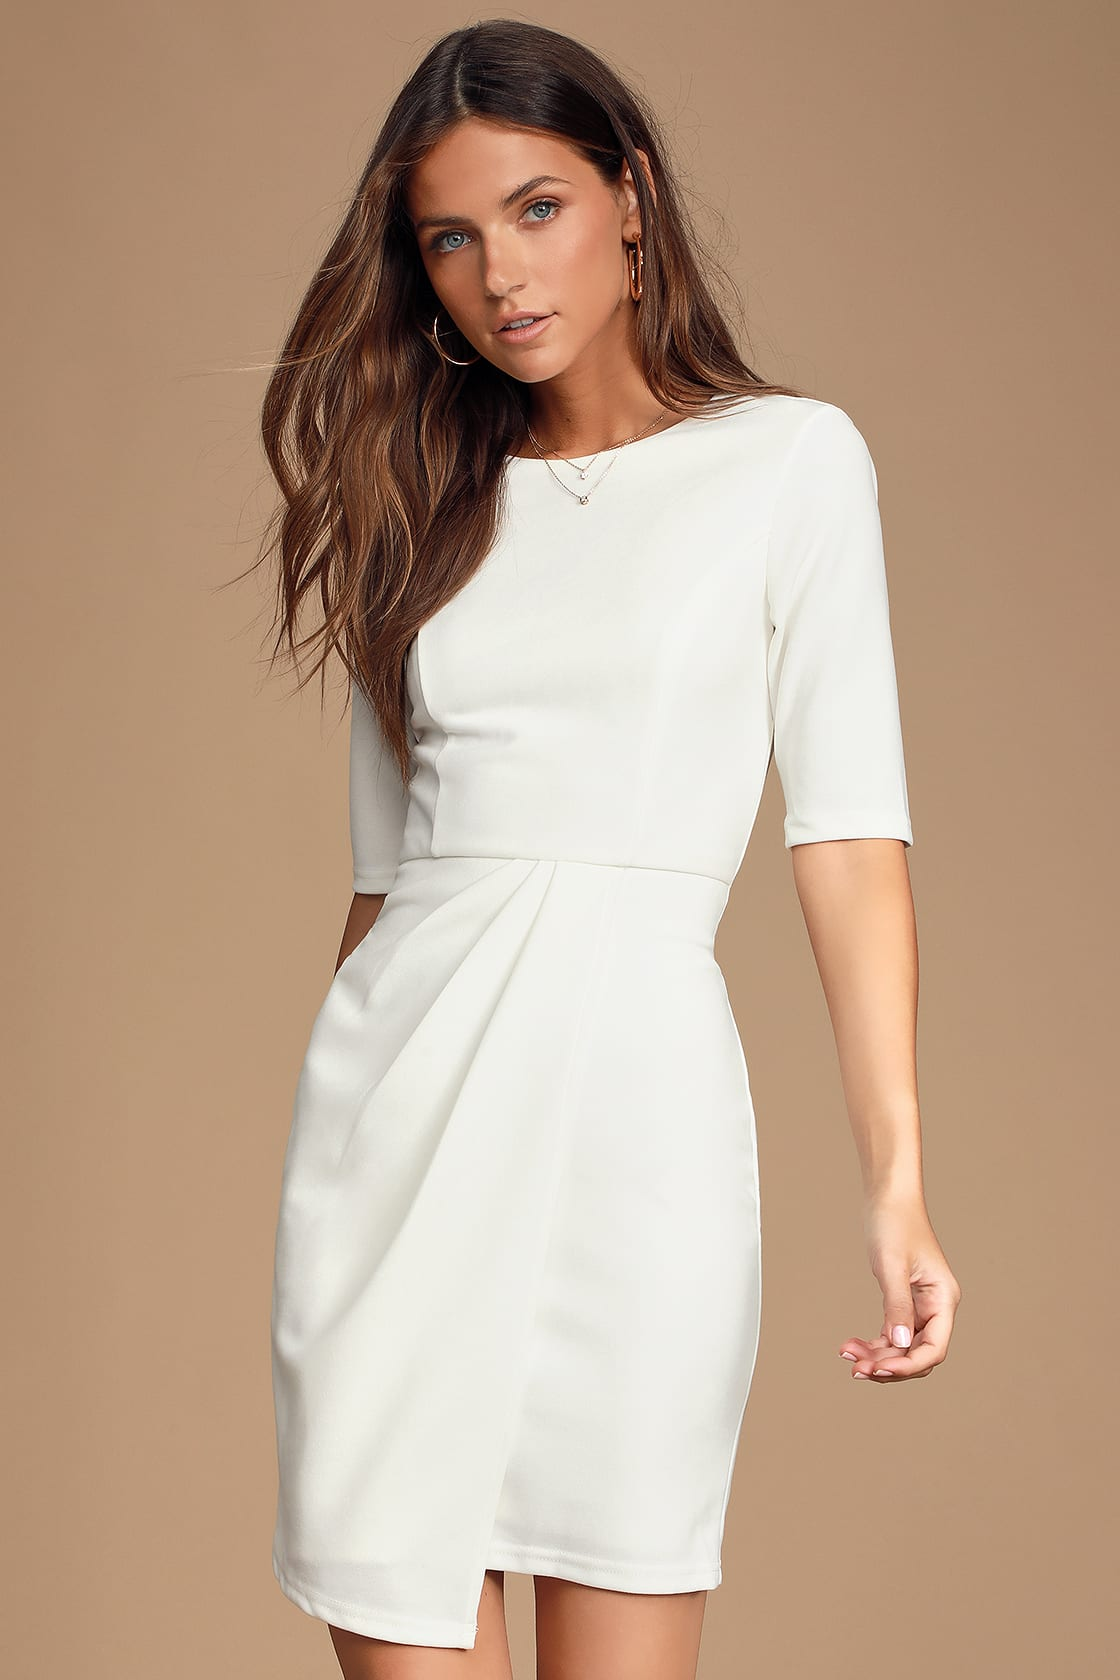 Sophisticated white graduation dress with sleeves